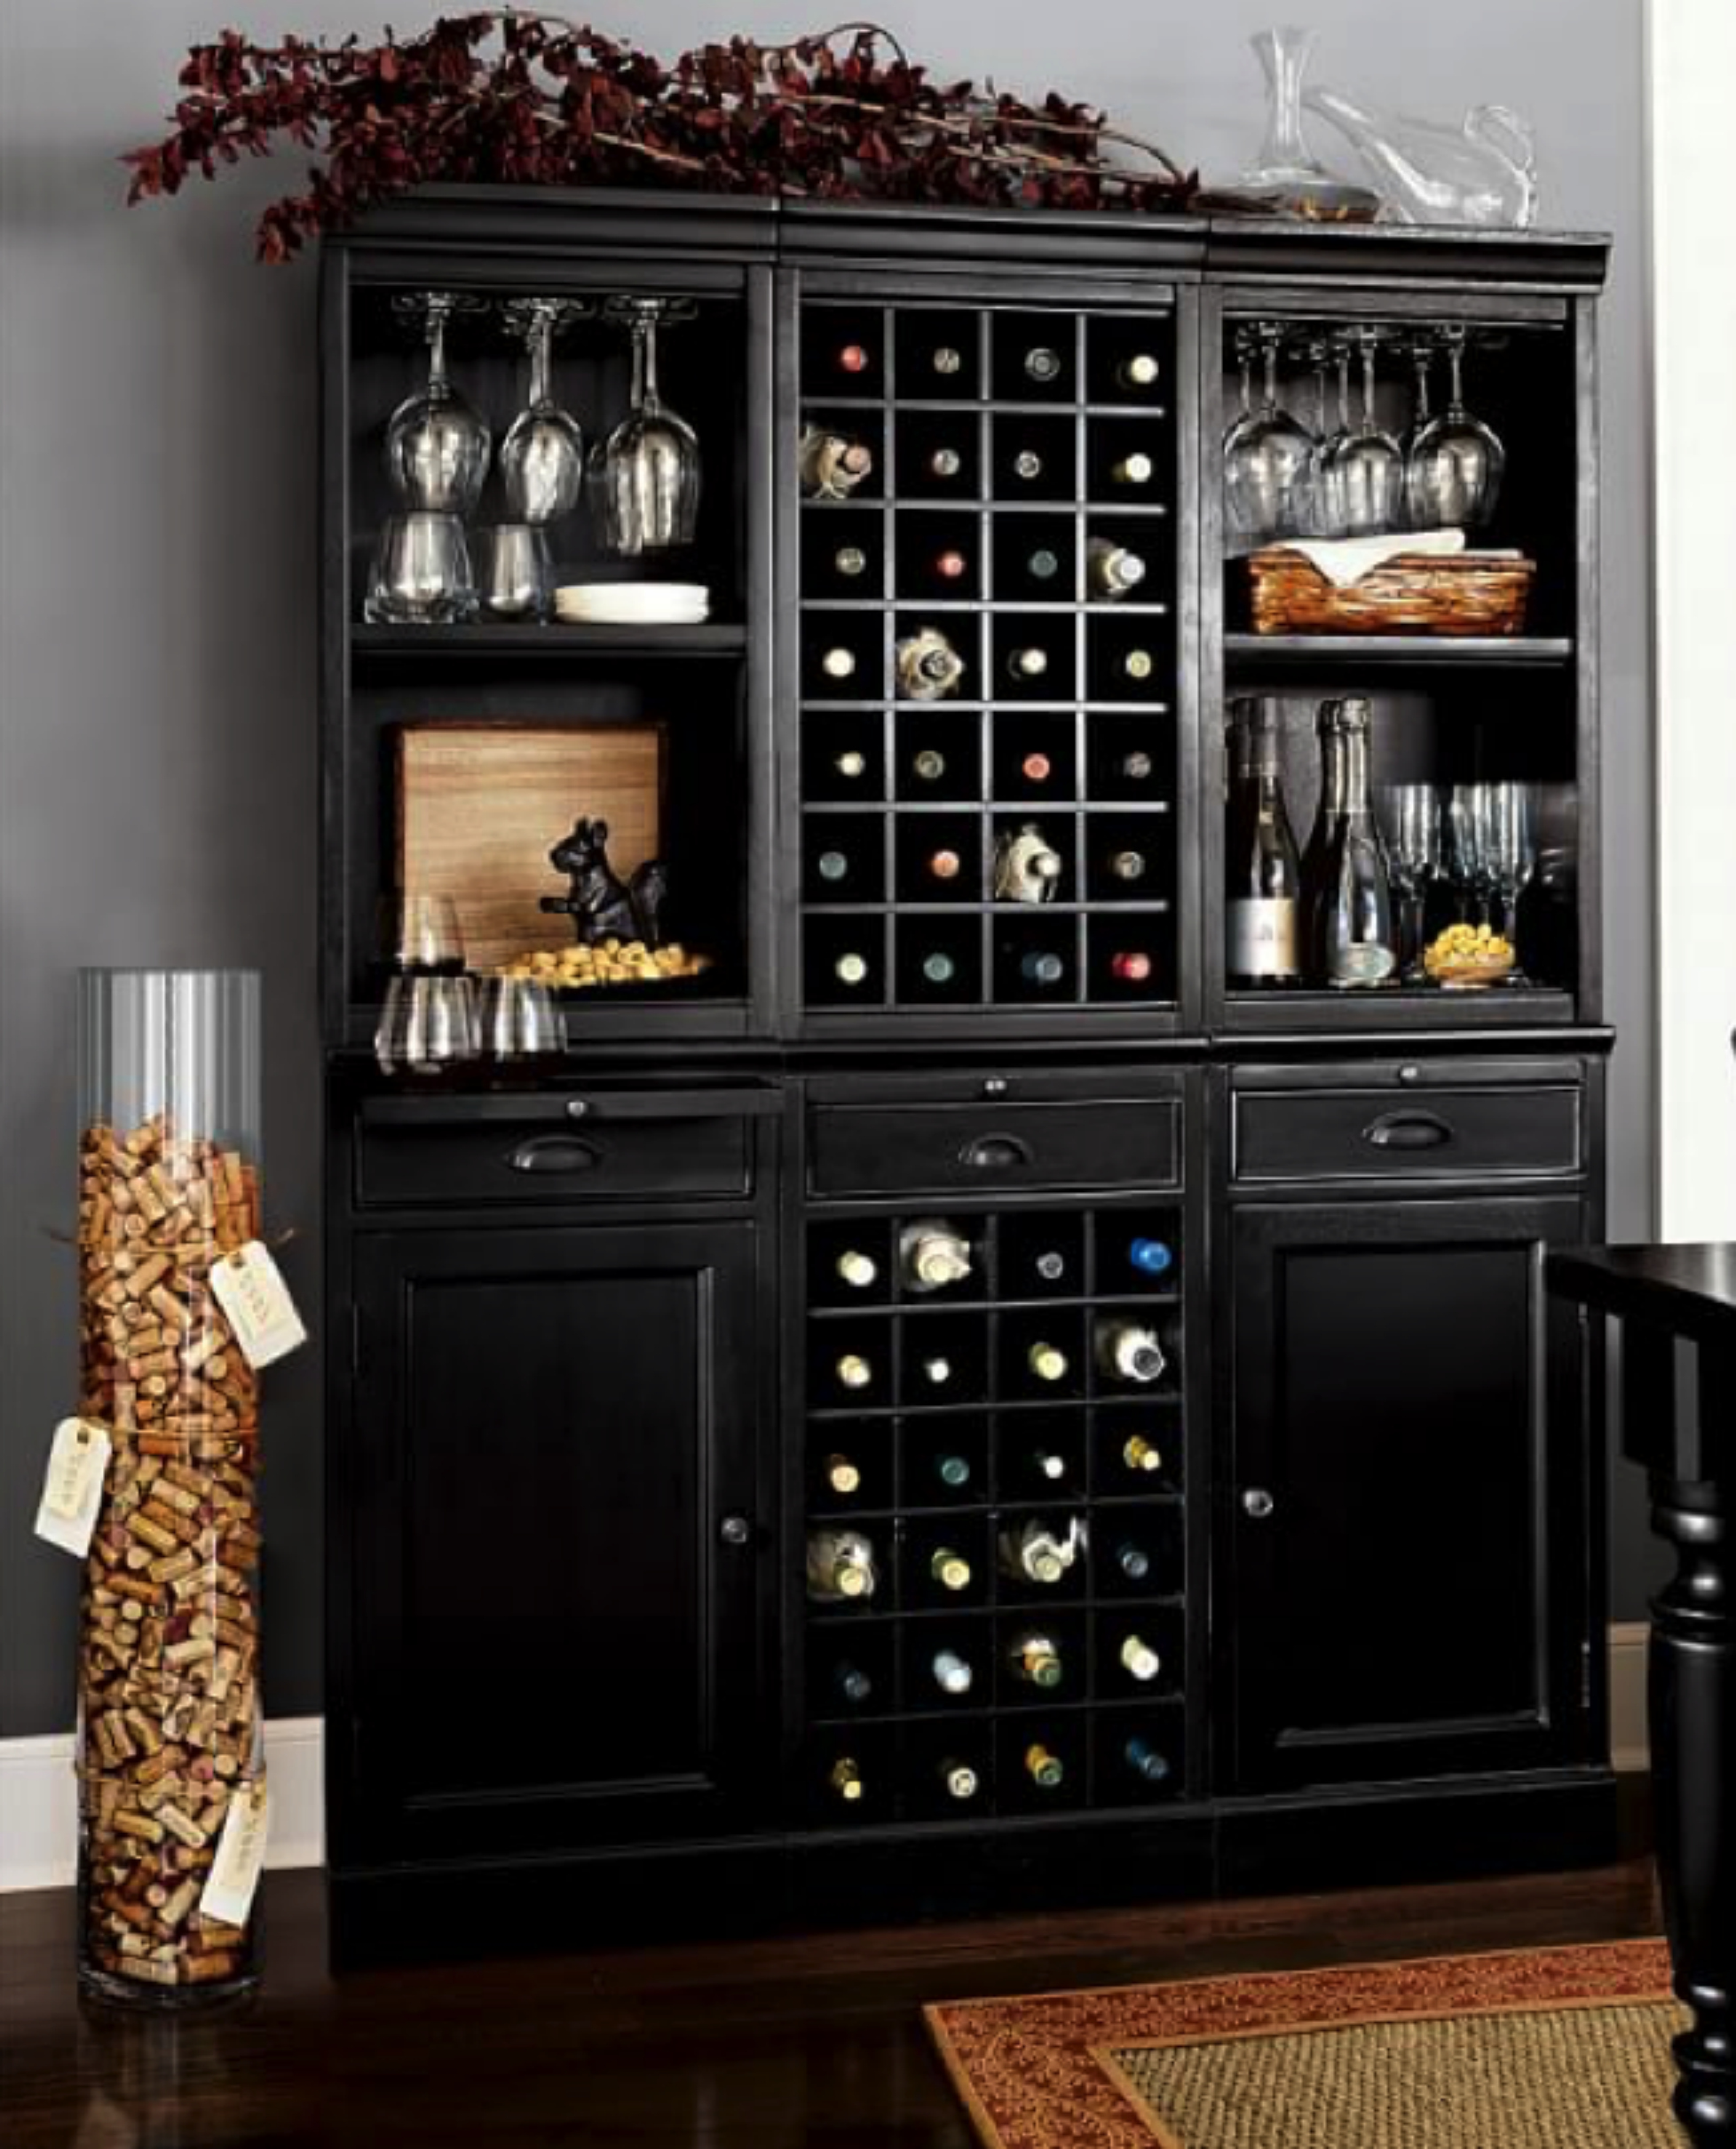 Wine Bar Decorating Ideas Home: Quick Tips For Displaying & Organizing Your Collections